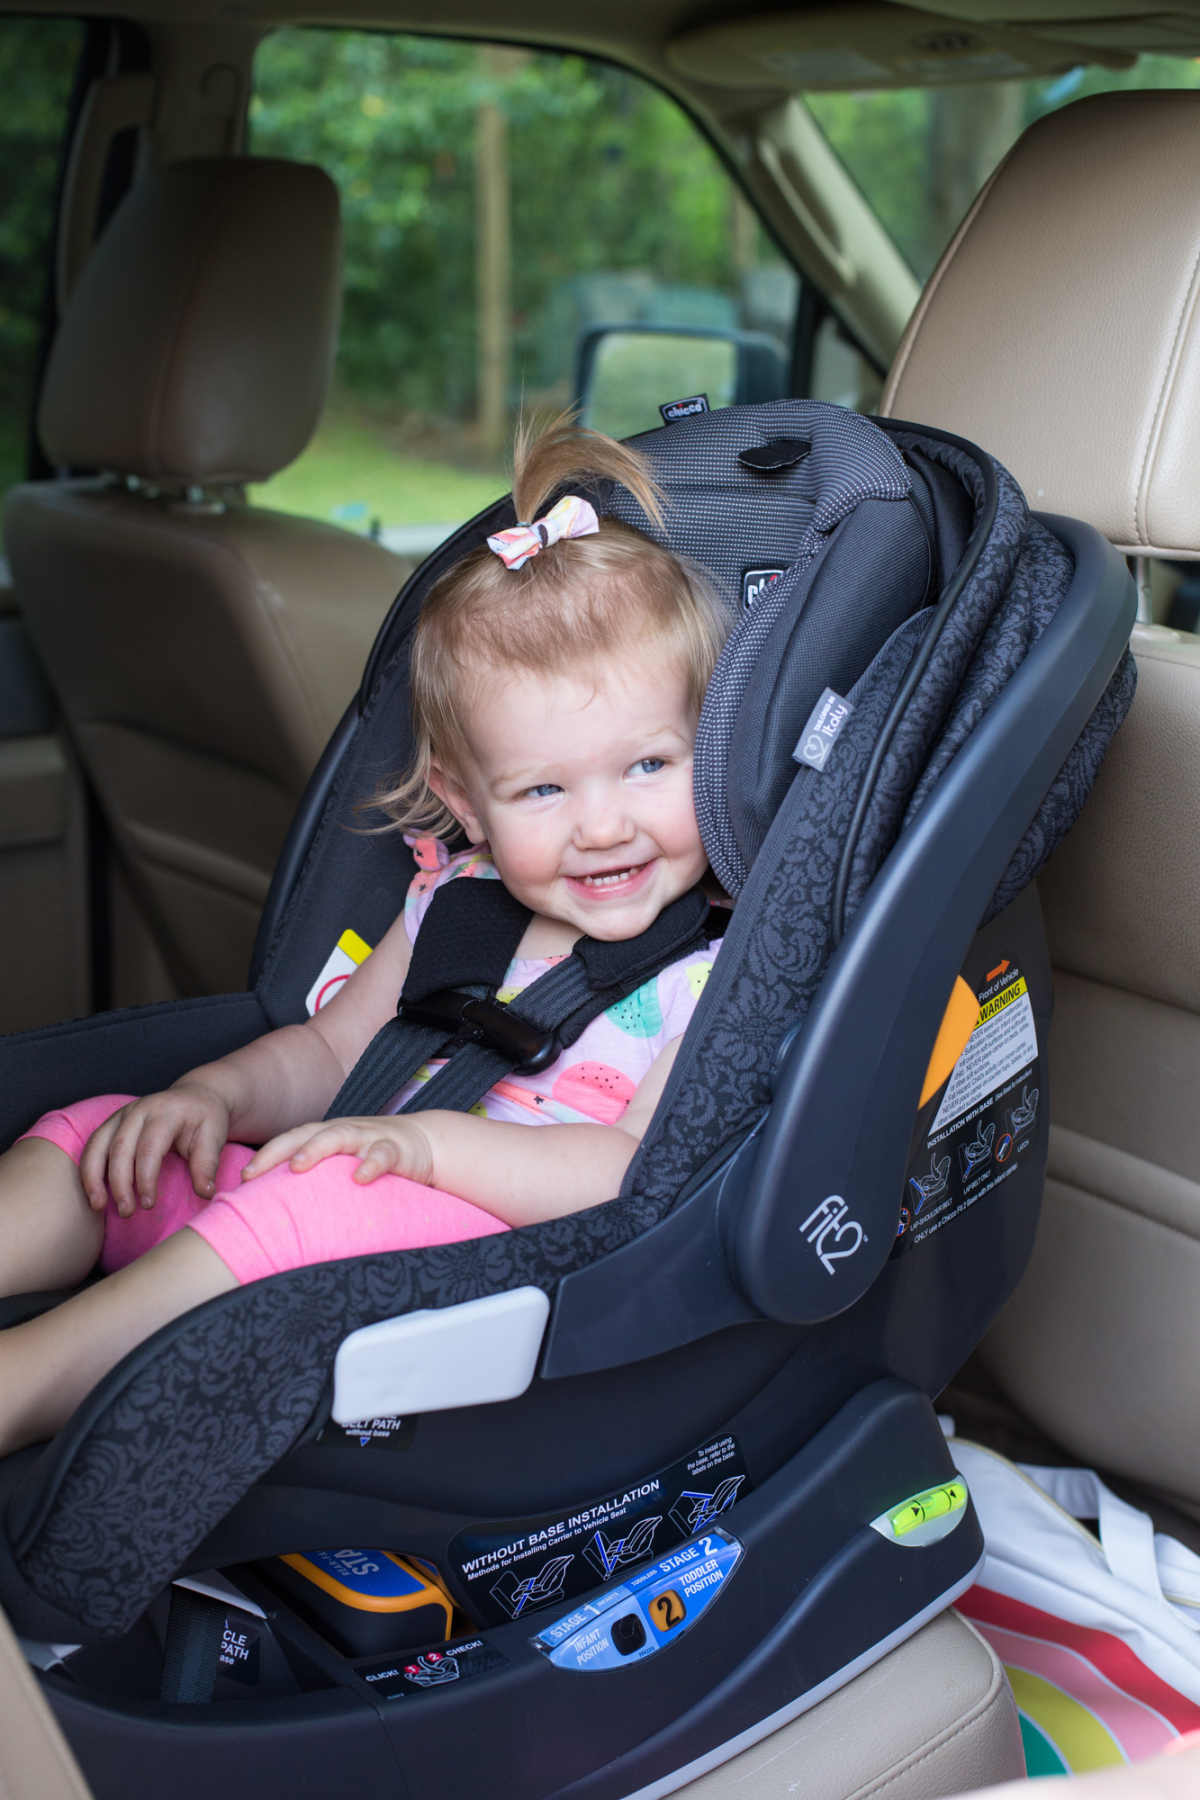 The Fit 2 Car Seat That Lasts Until Baby Is 2 - Lay Baby Lay